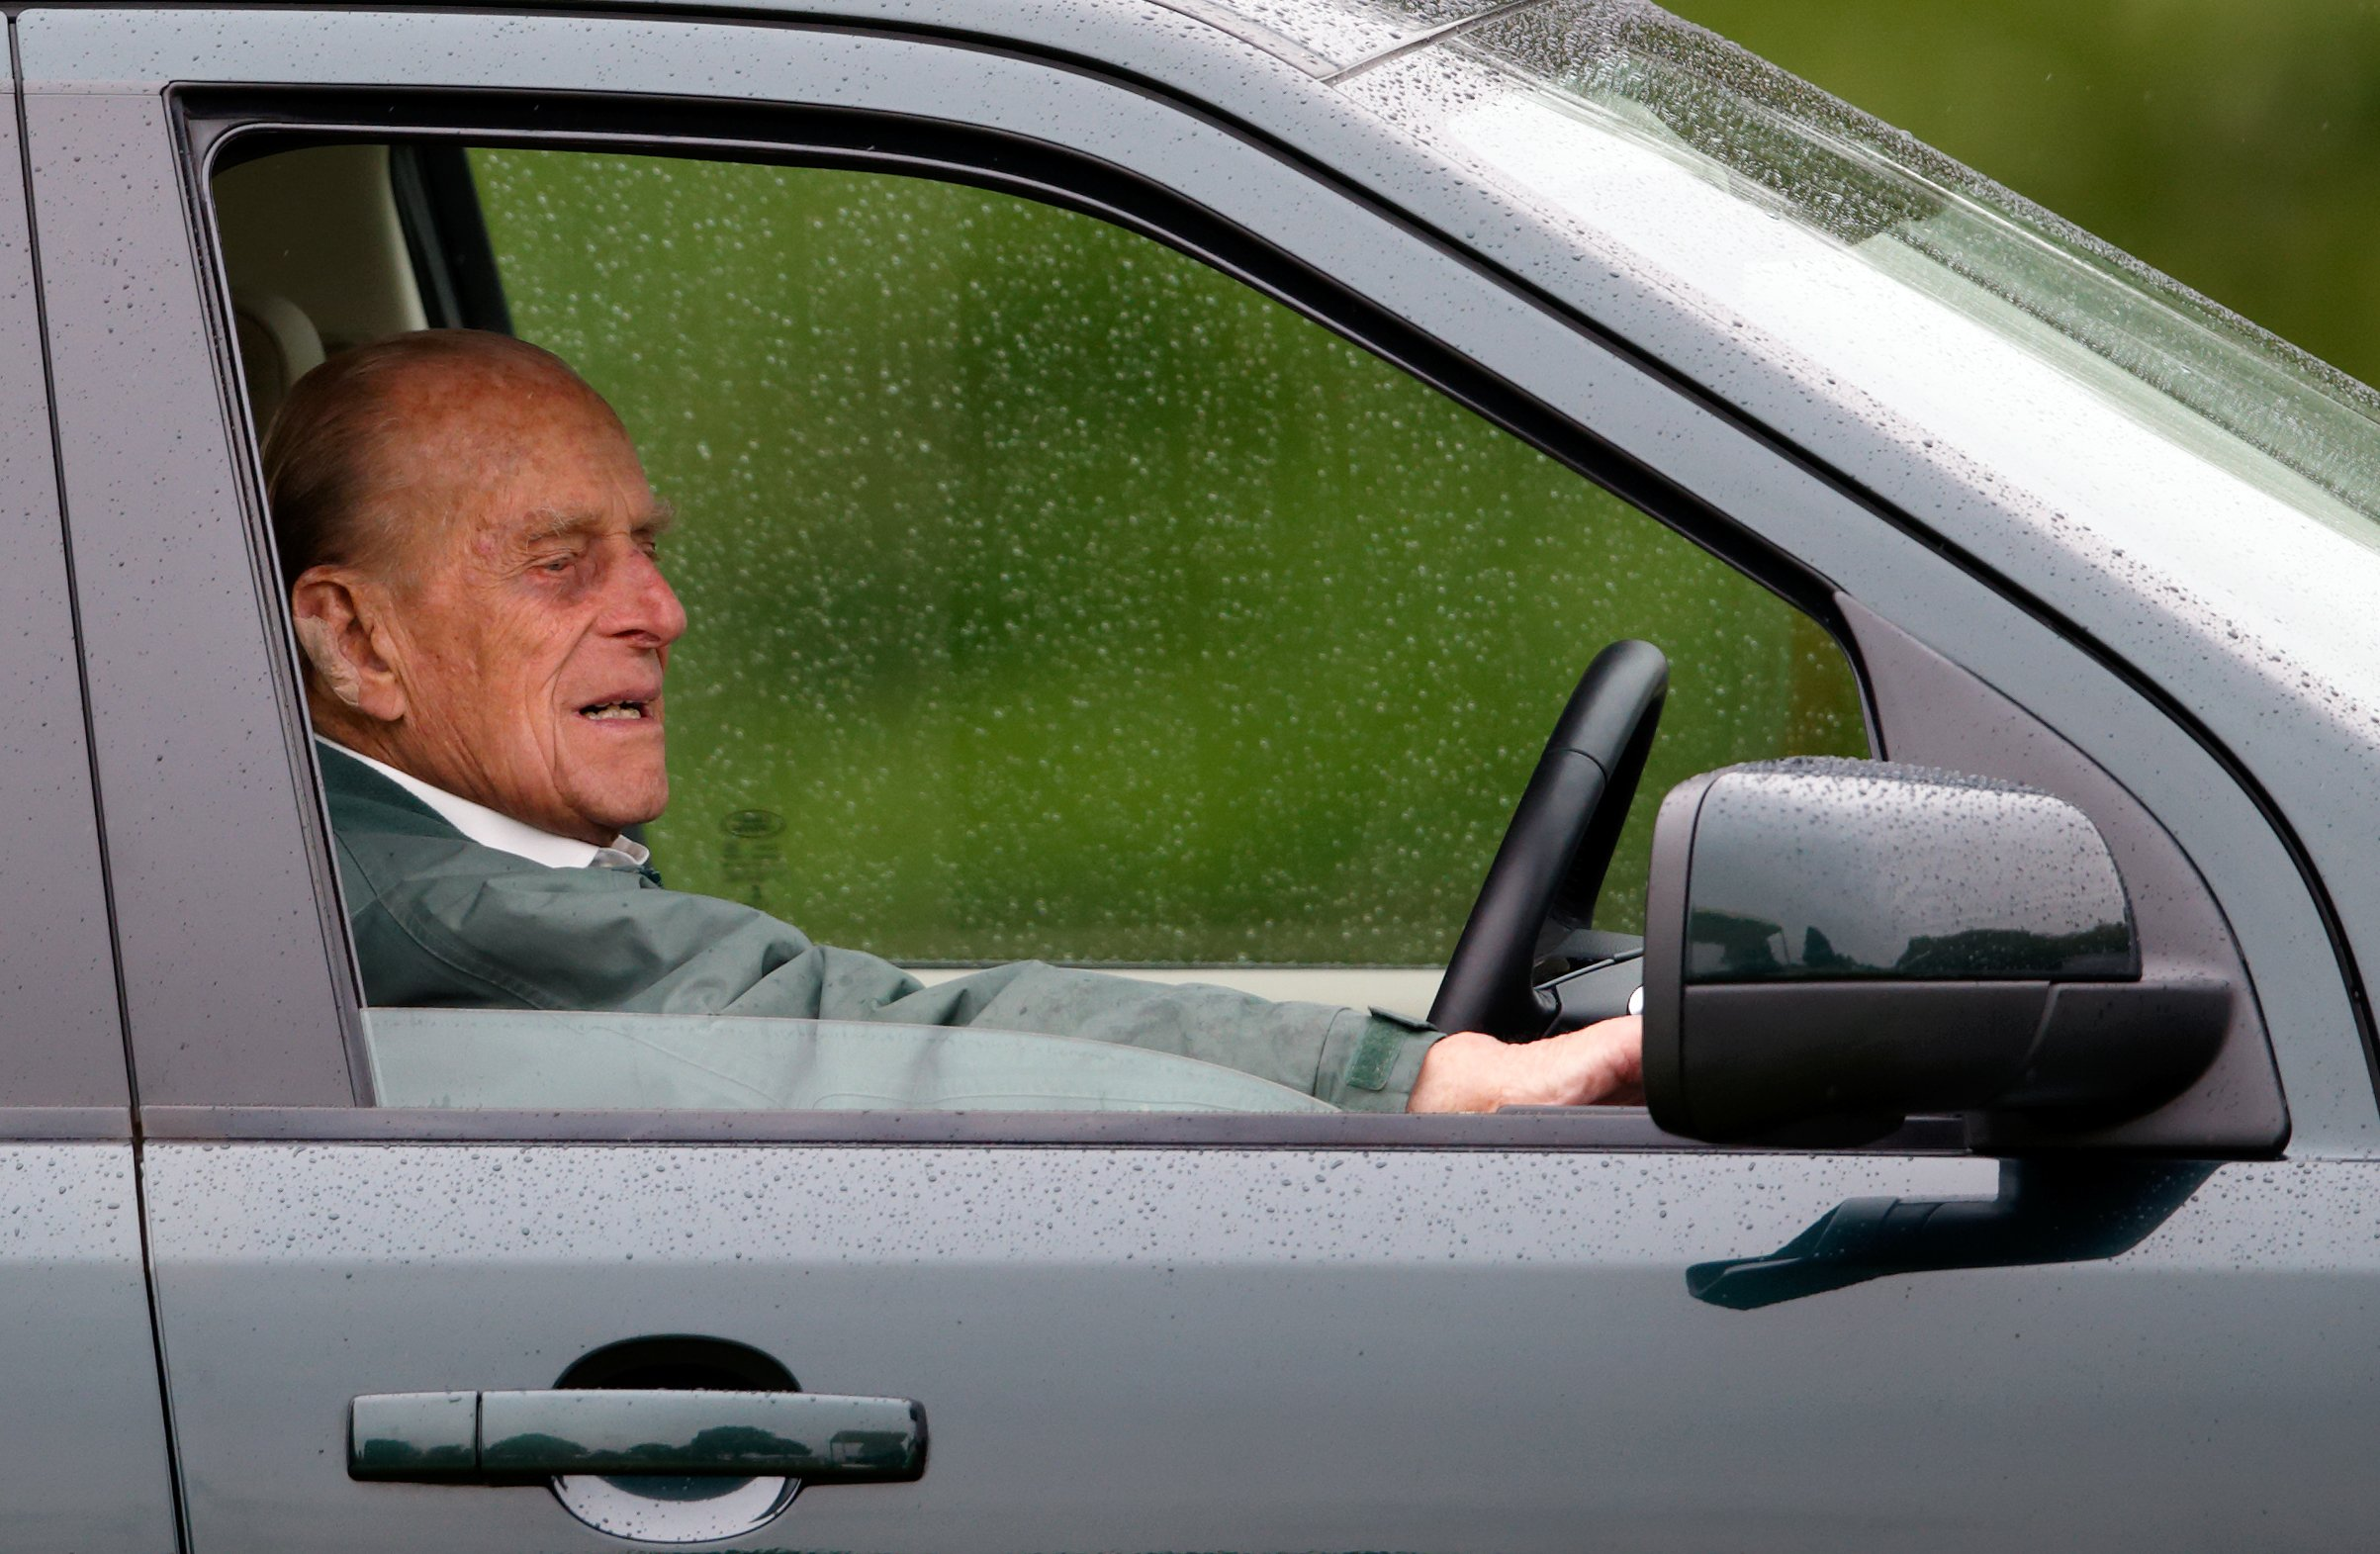 Prince Philip of the royal family | Photo: Getty Images